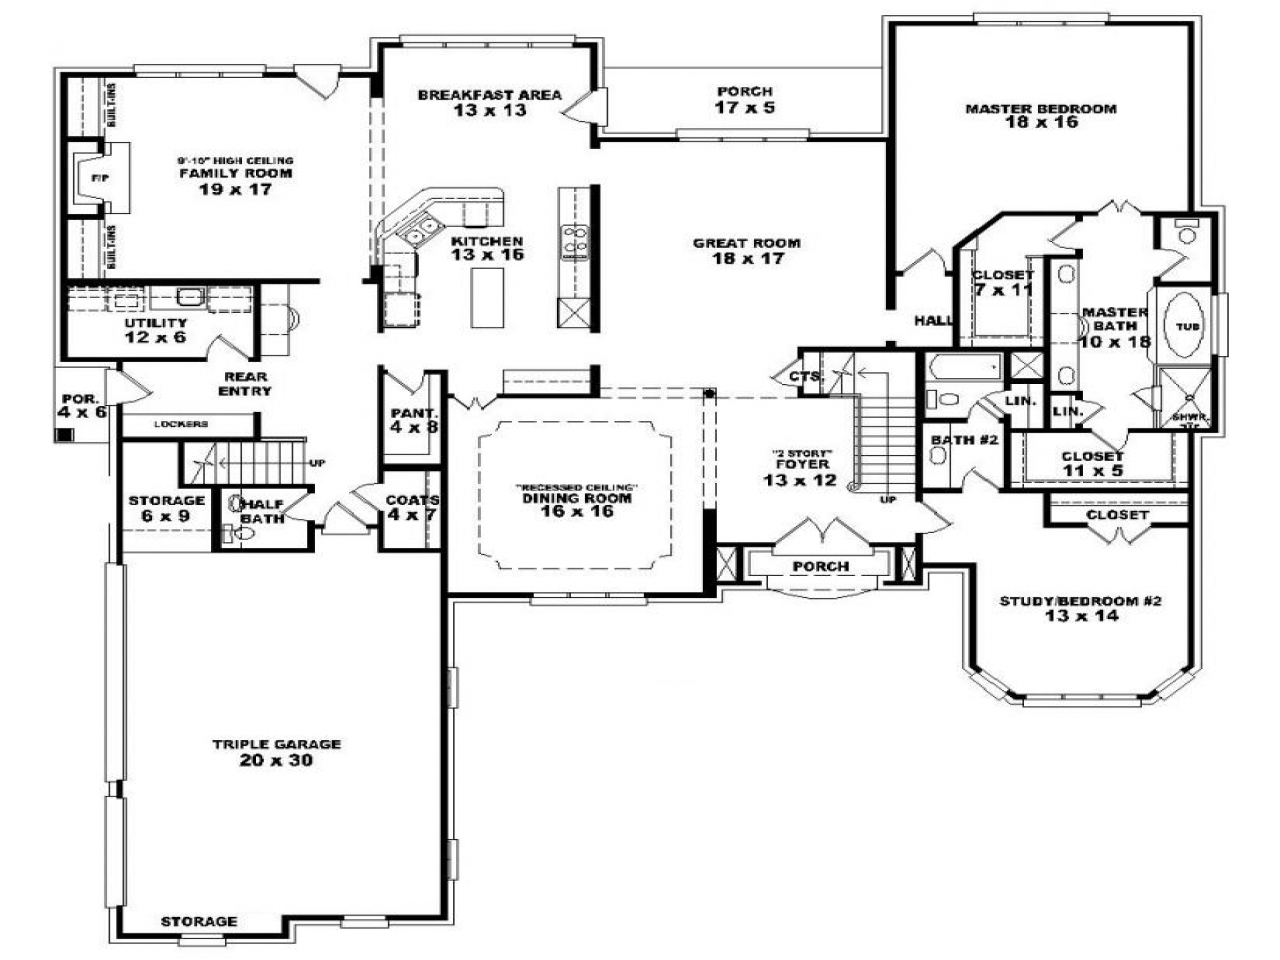 4 bedroom one story house plans our two bedroom story for 4 bedroom house plans one story